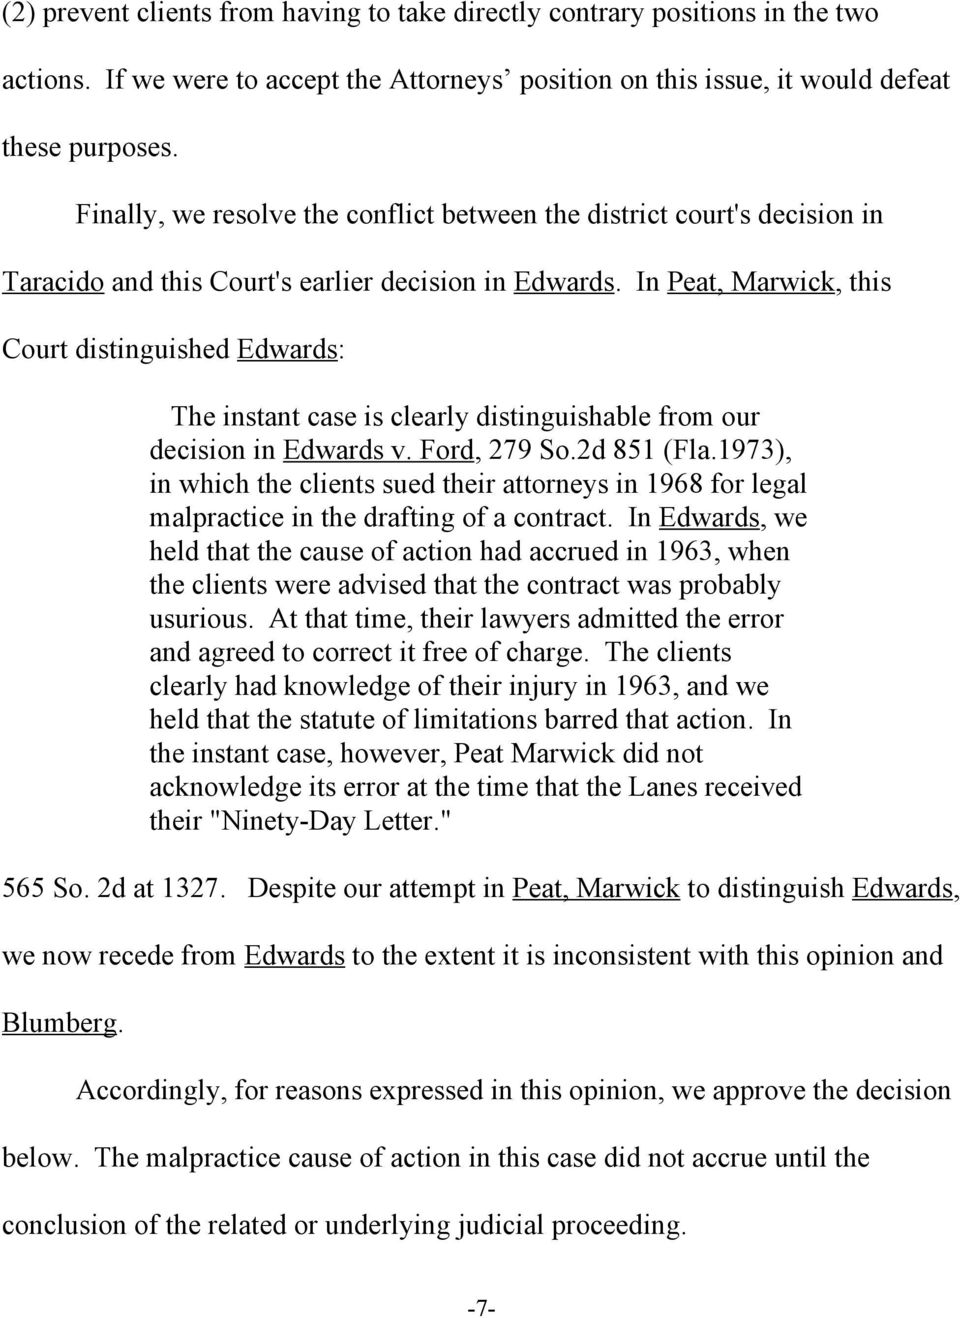 In Peat, Marwick, this Court distinguished Edwards: The instant case is clearly distinguishable from our decision in Edwards v. Ford, 279 So.2d 851 (Fla.